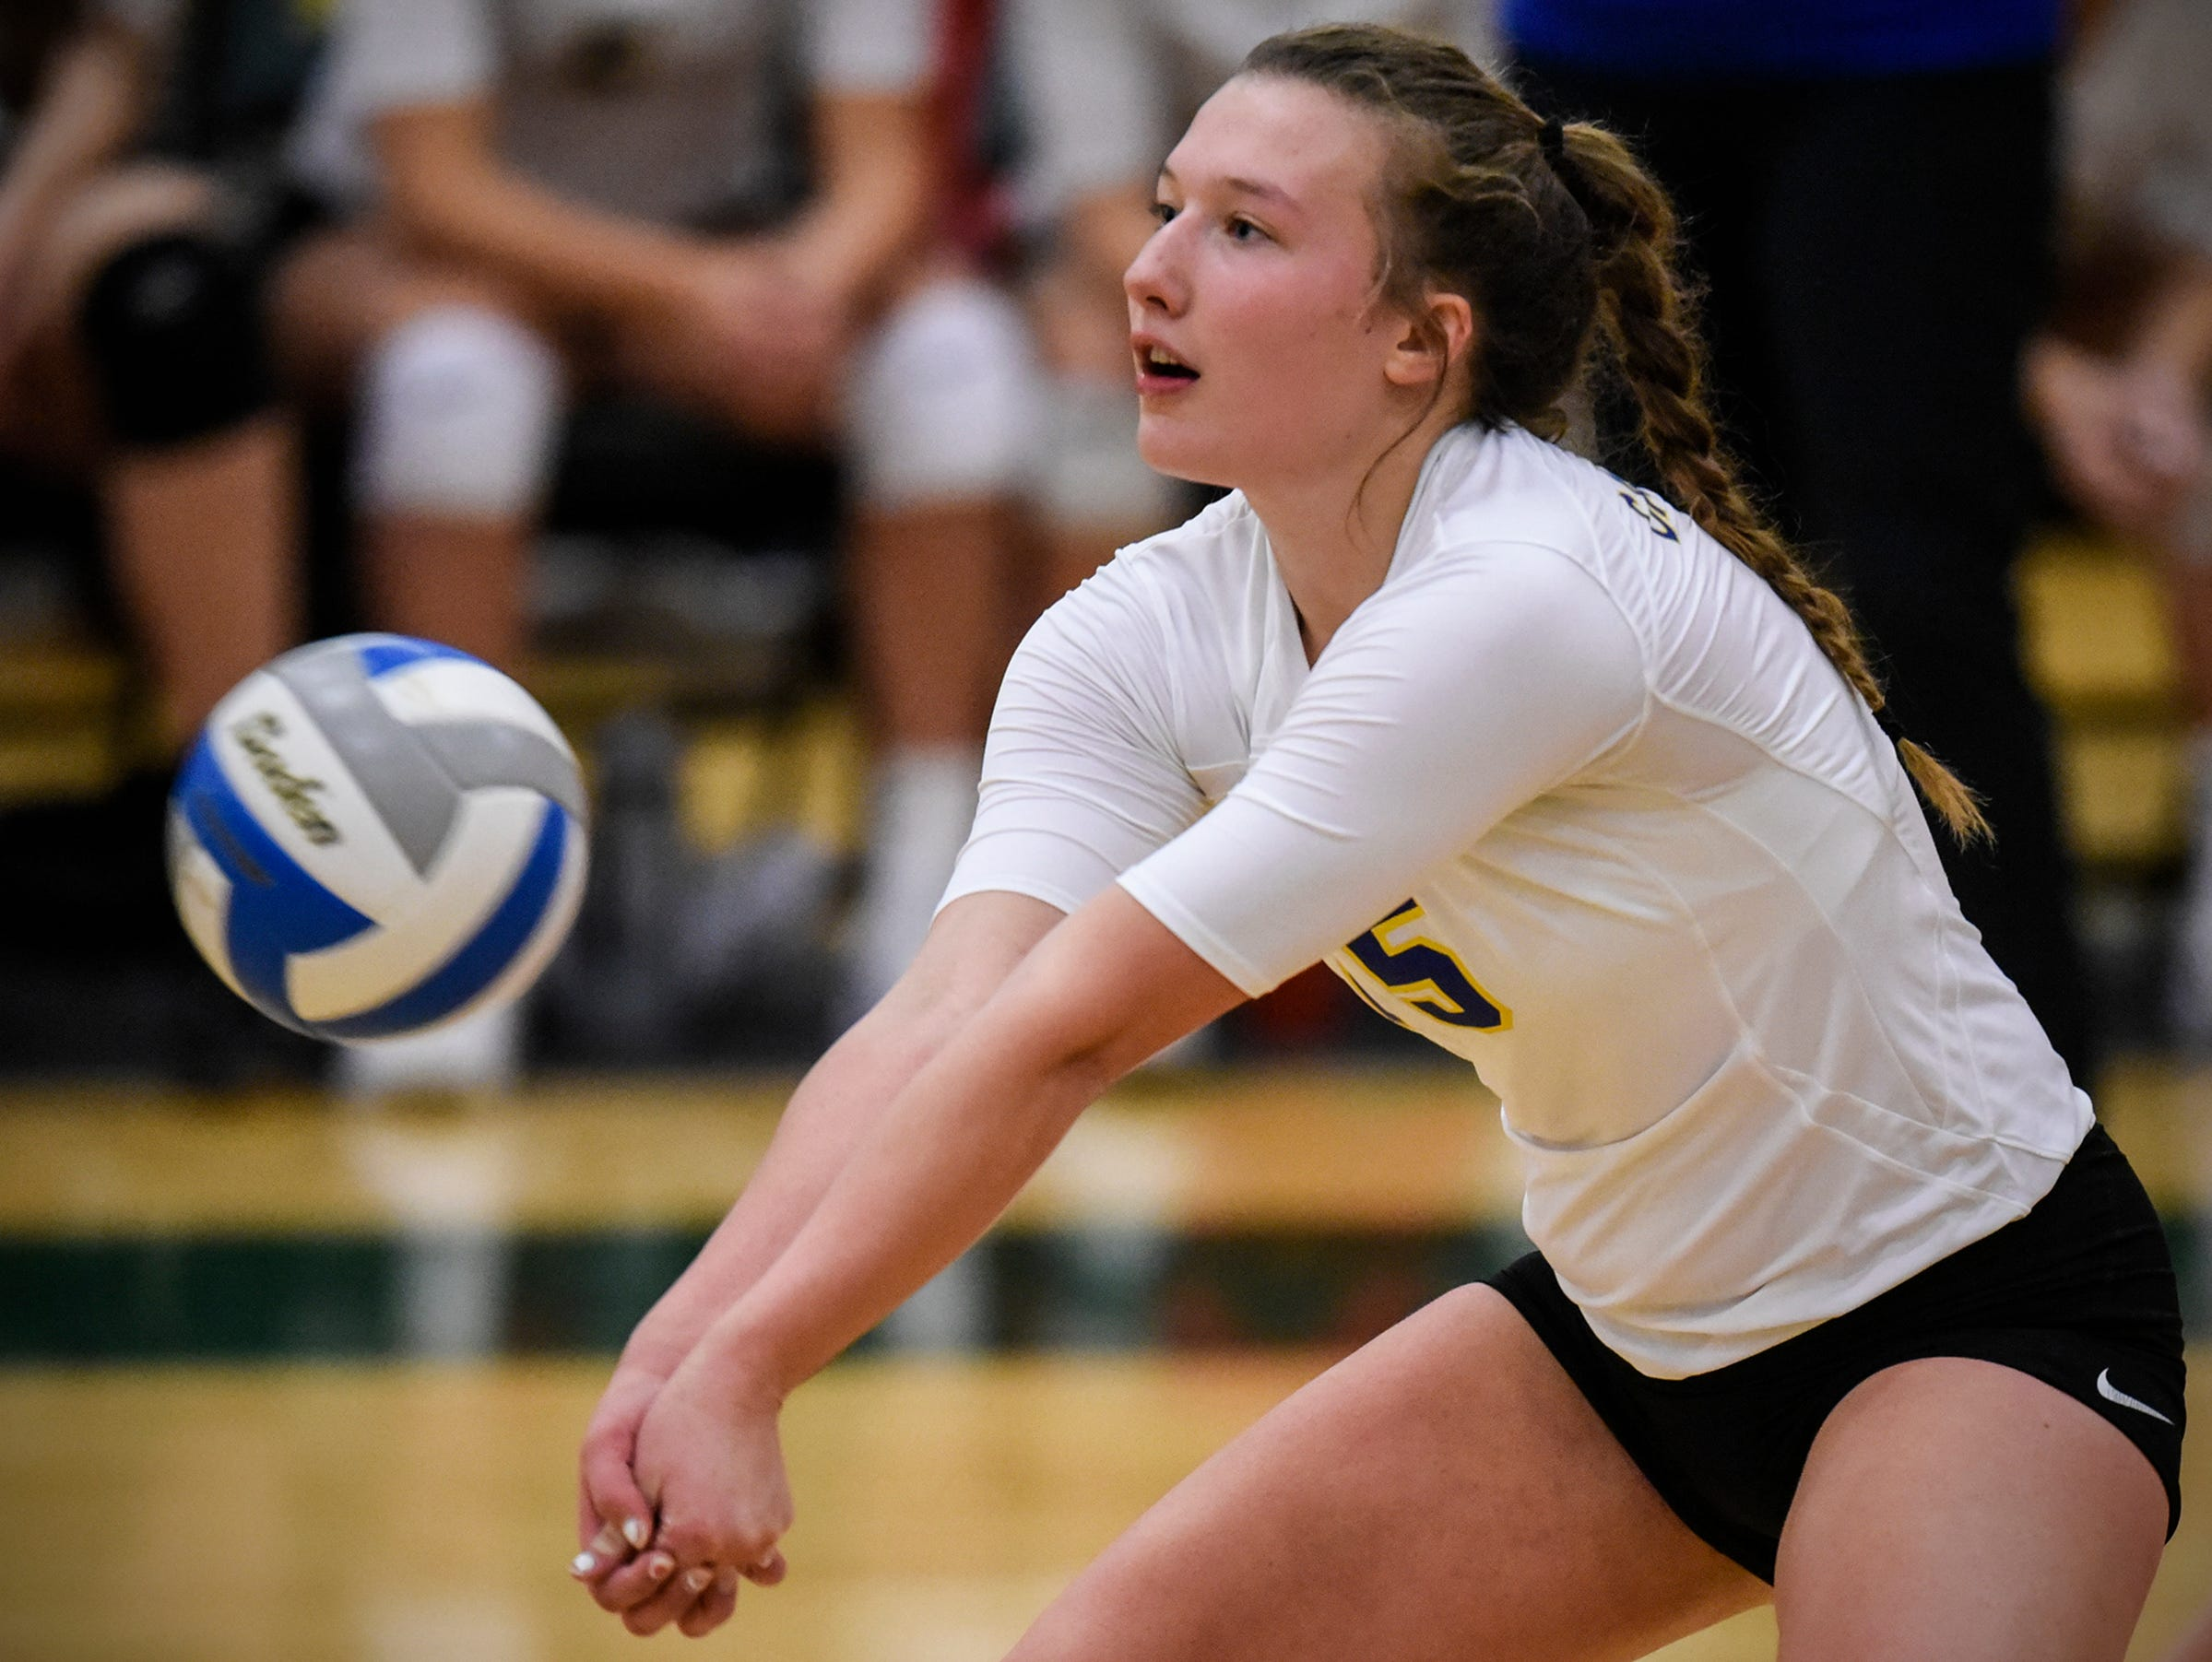 Cathedral's Heying named Times Volleyball Player of the Year